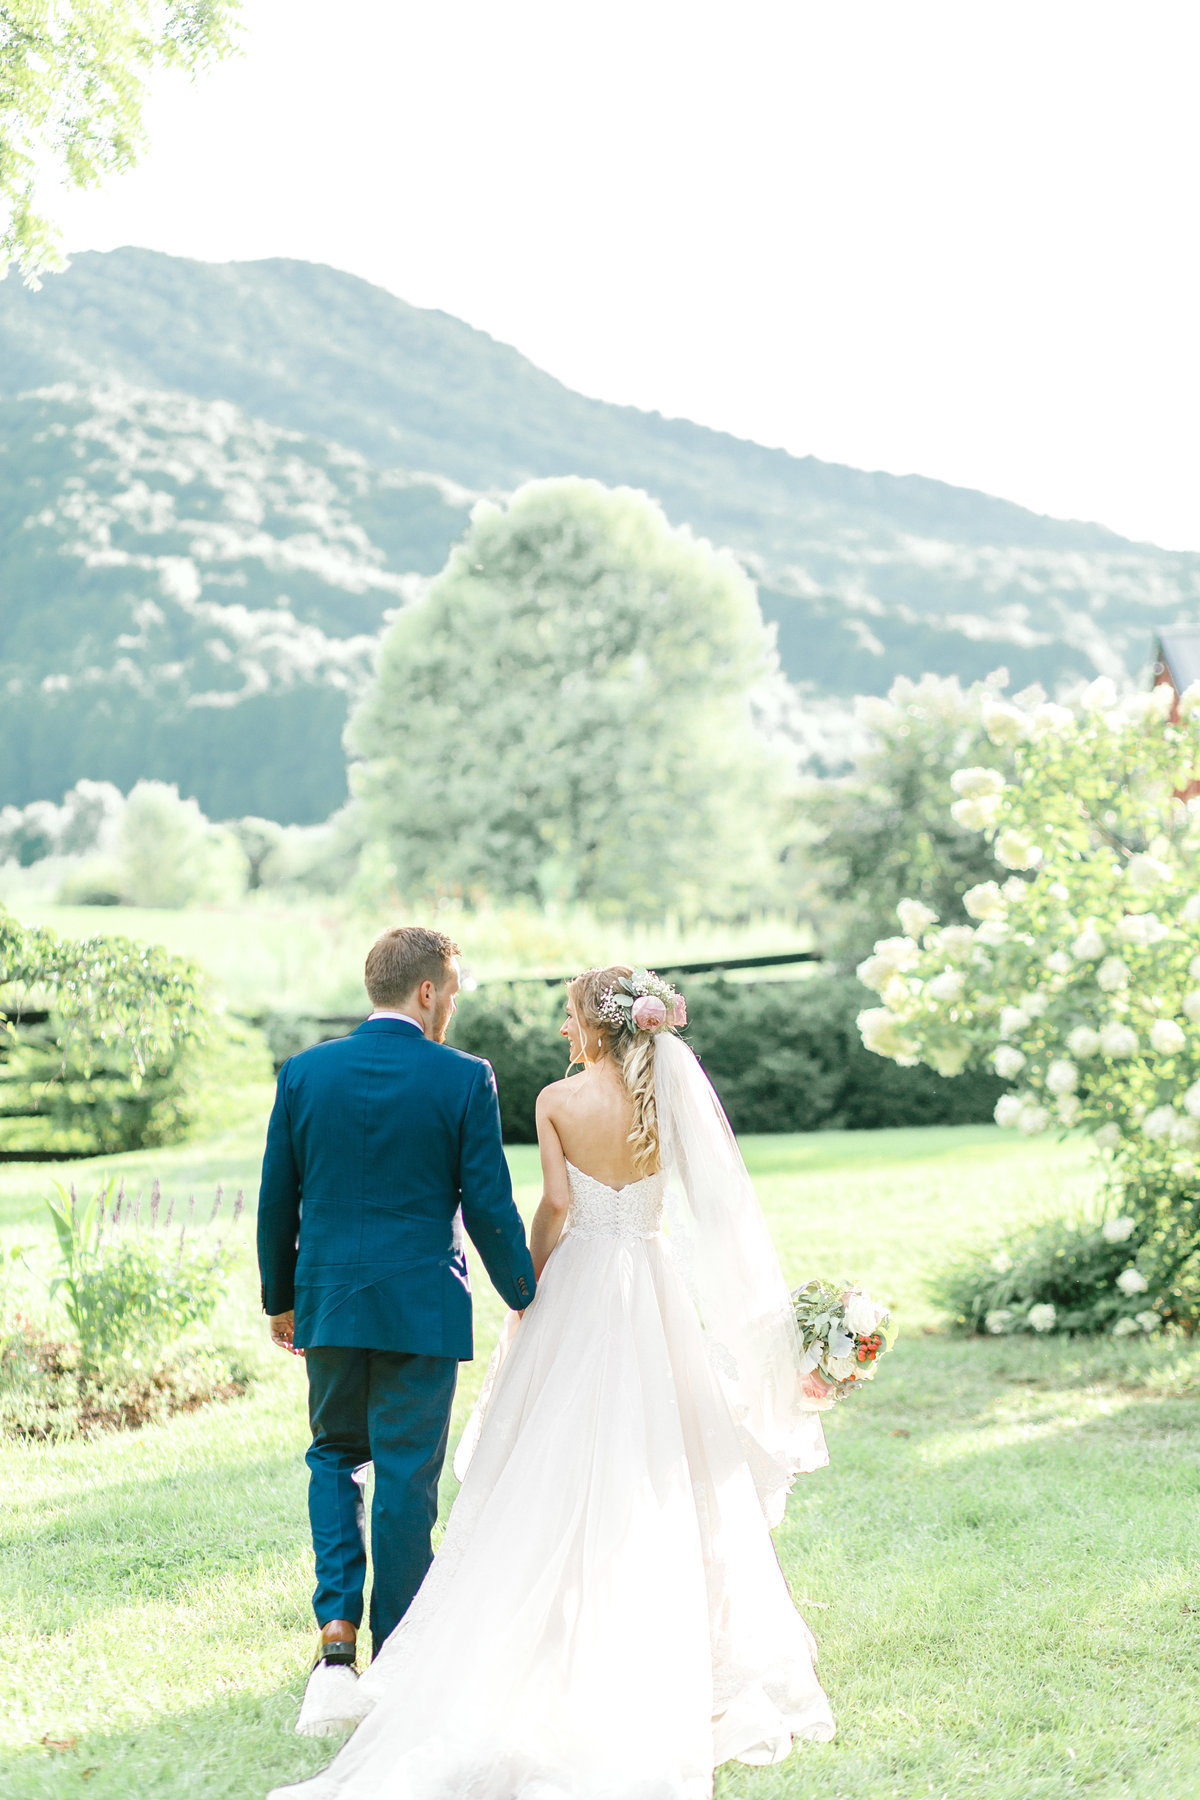 virginiaweddingphotographer-86